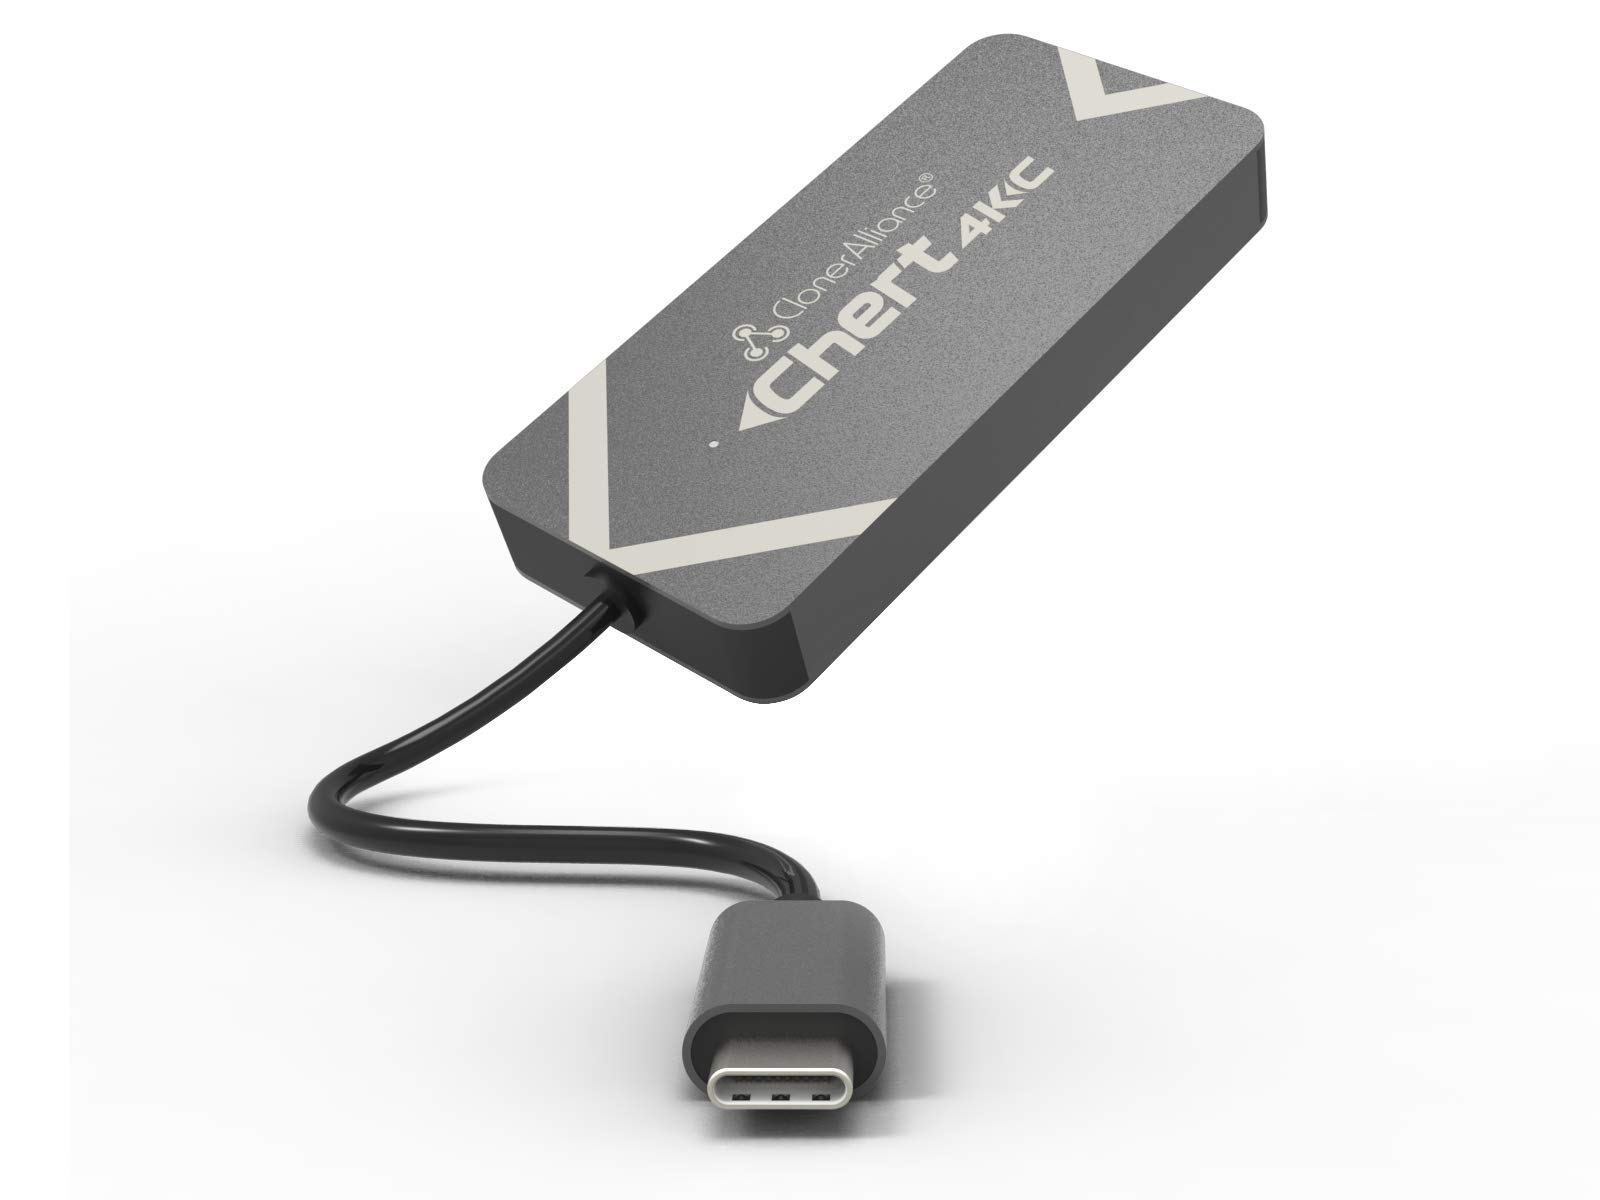 ClonerAlliance Chert 4KC, HDMI to USB-C Video Capture Dongle, Ultra Low Latency, Play Game Consoles on Laptop, Driver Free, 4K Input Supported. by ClonerAlliance